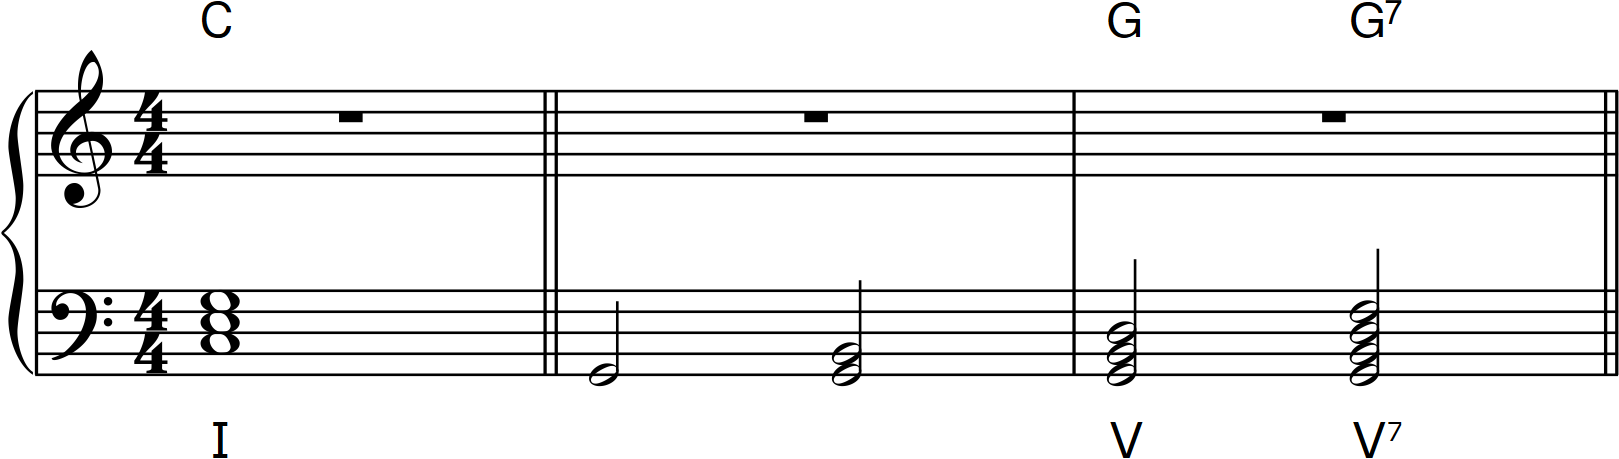 Keyboard Exercise Article 2 - Fig_11